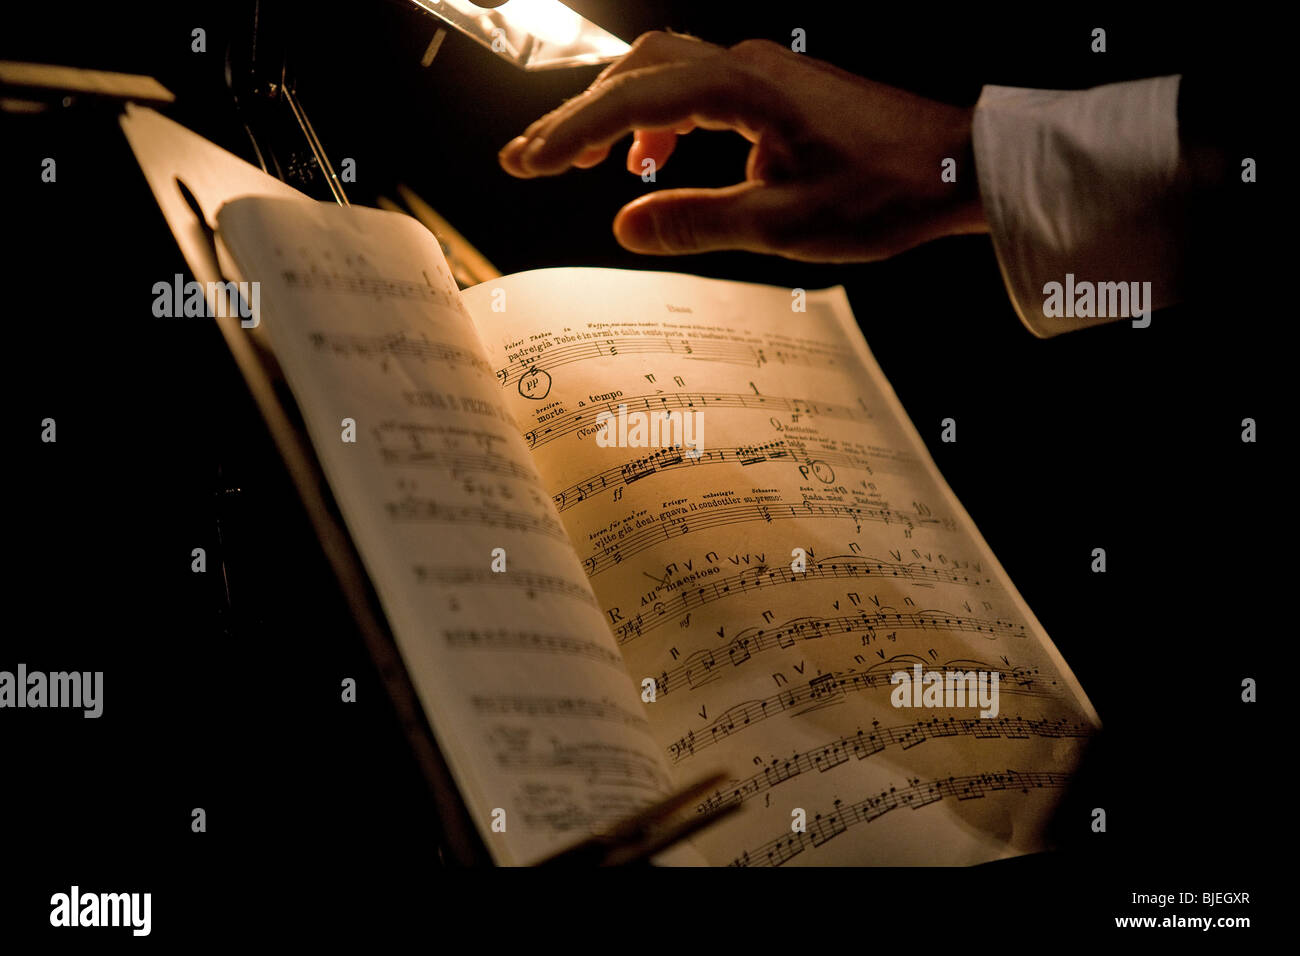 concerts, musical, scores - Stock Image